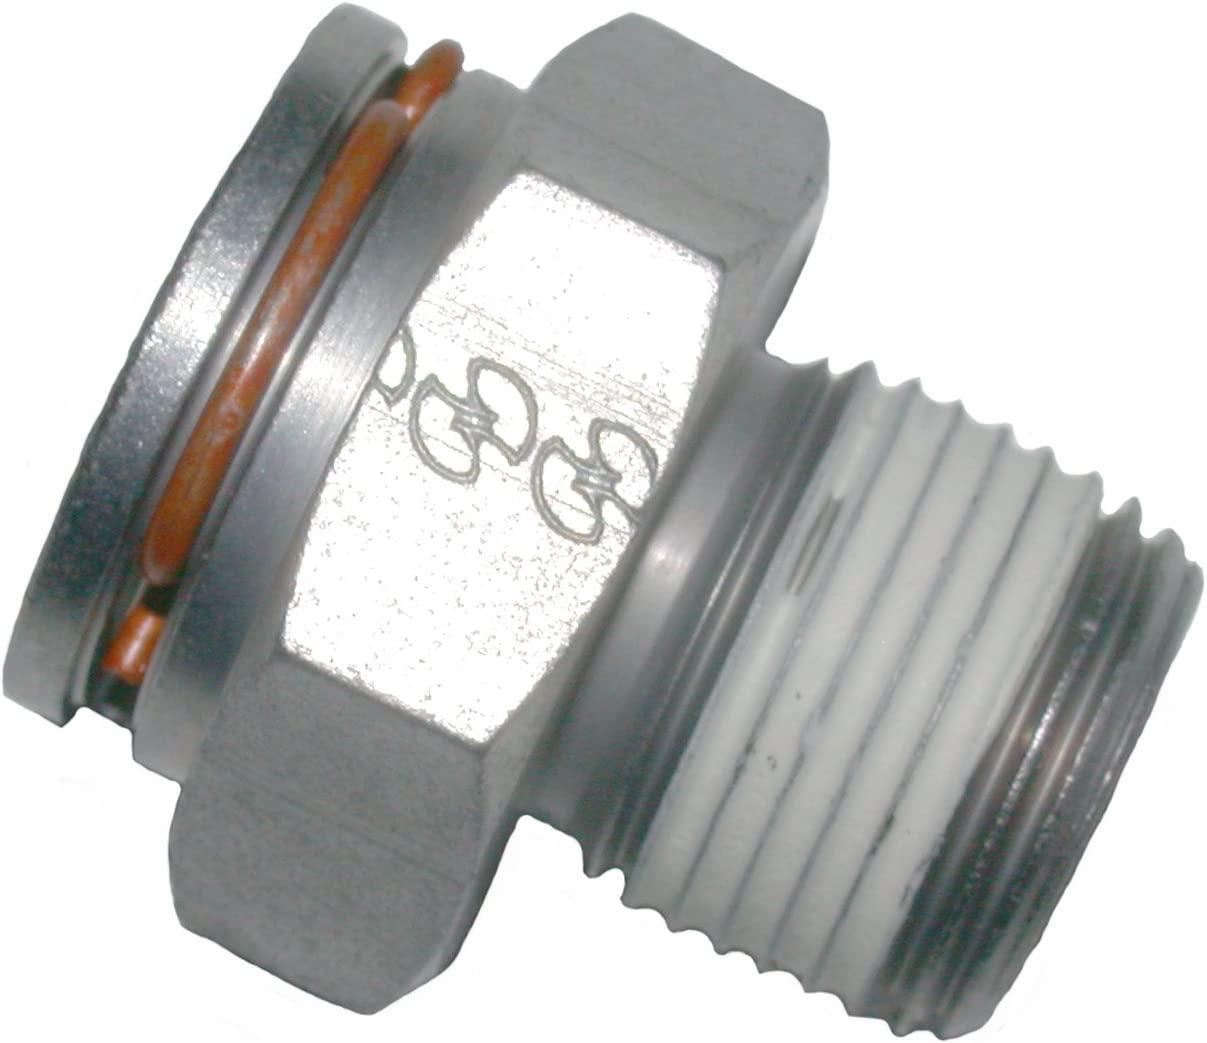 Needa Parts 800-603 Transmission Cooling Line Connector